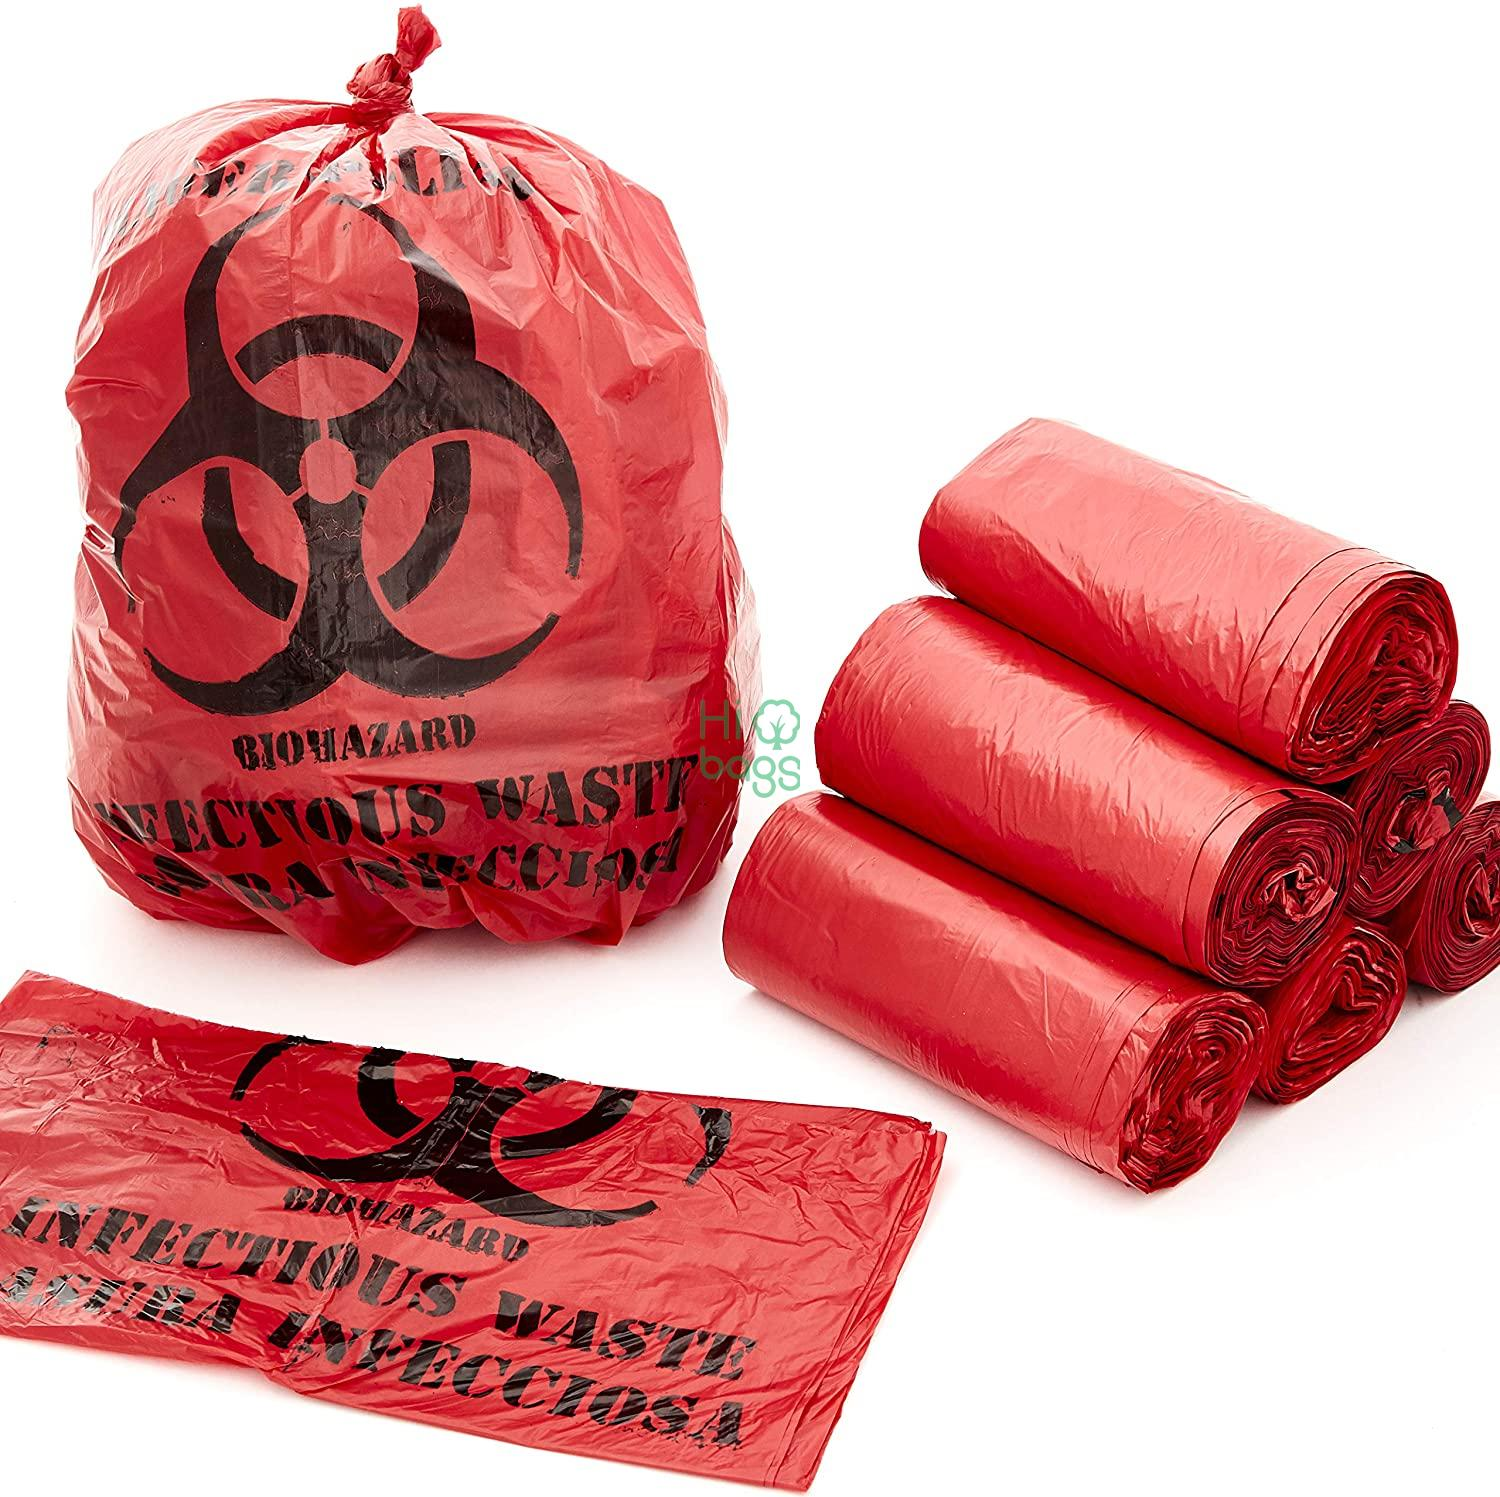 No Leakage Hospital Grade Biological With Red Hazard Mark Specimen Bag M